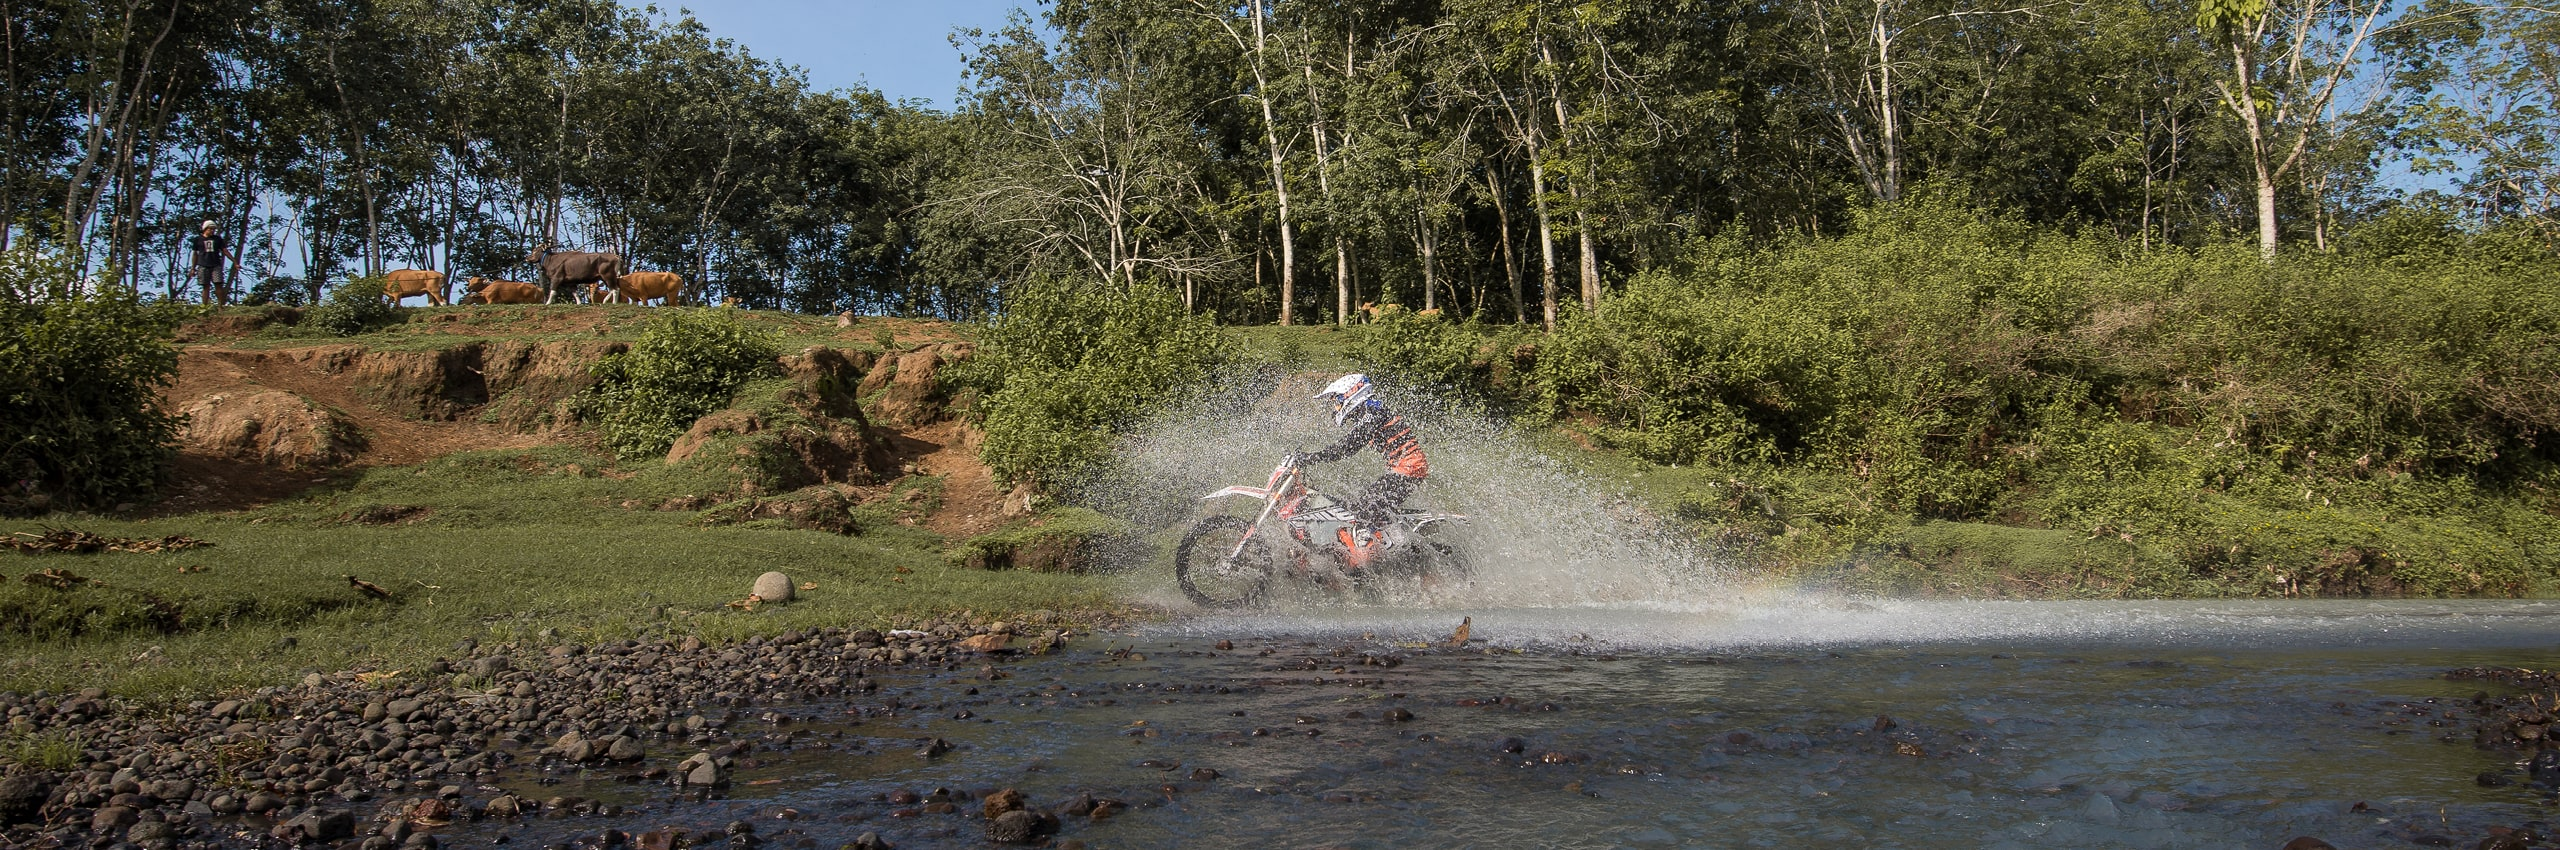 Bali_Dirt_Bikes_Tabanan_Jungle_Slider12